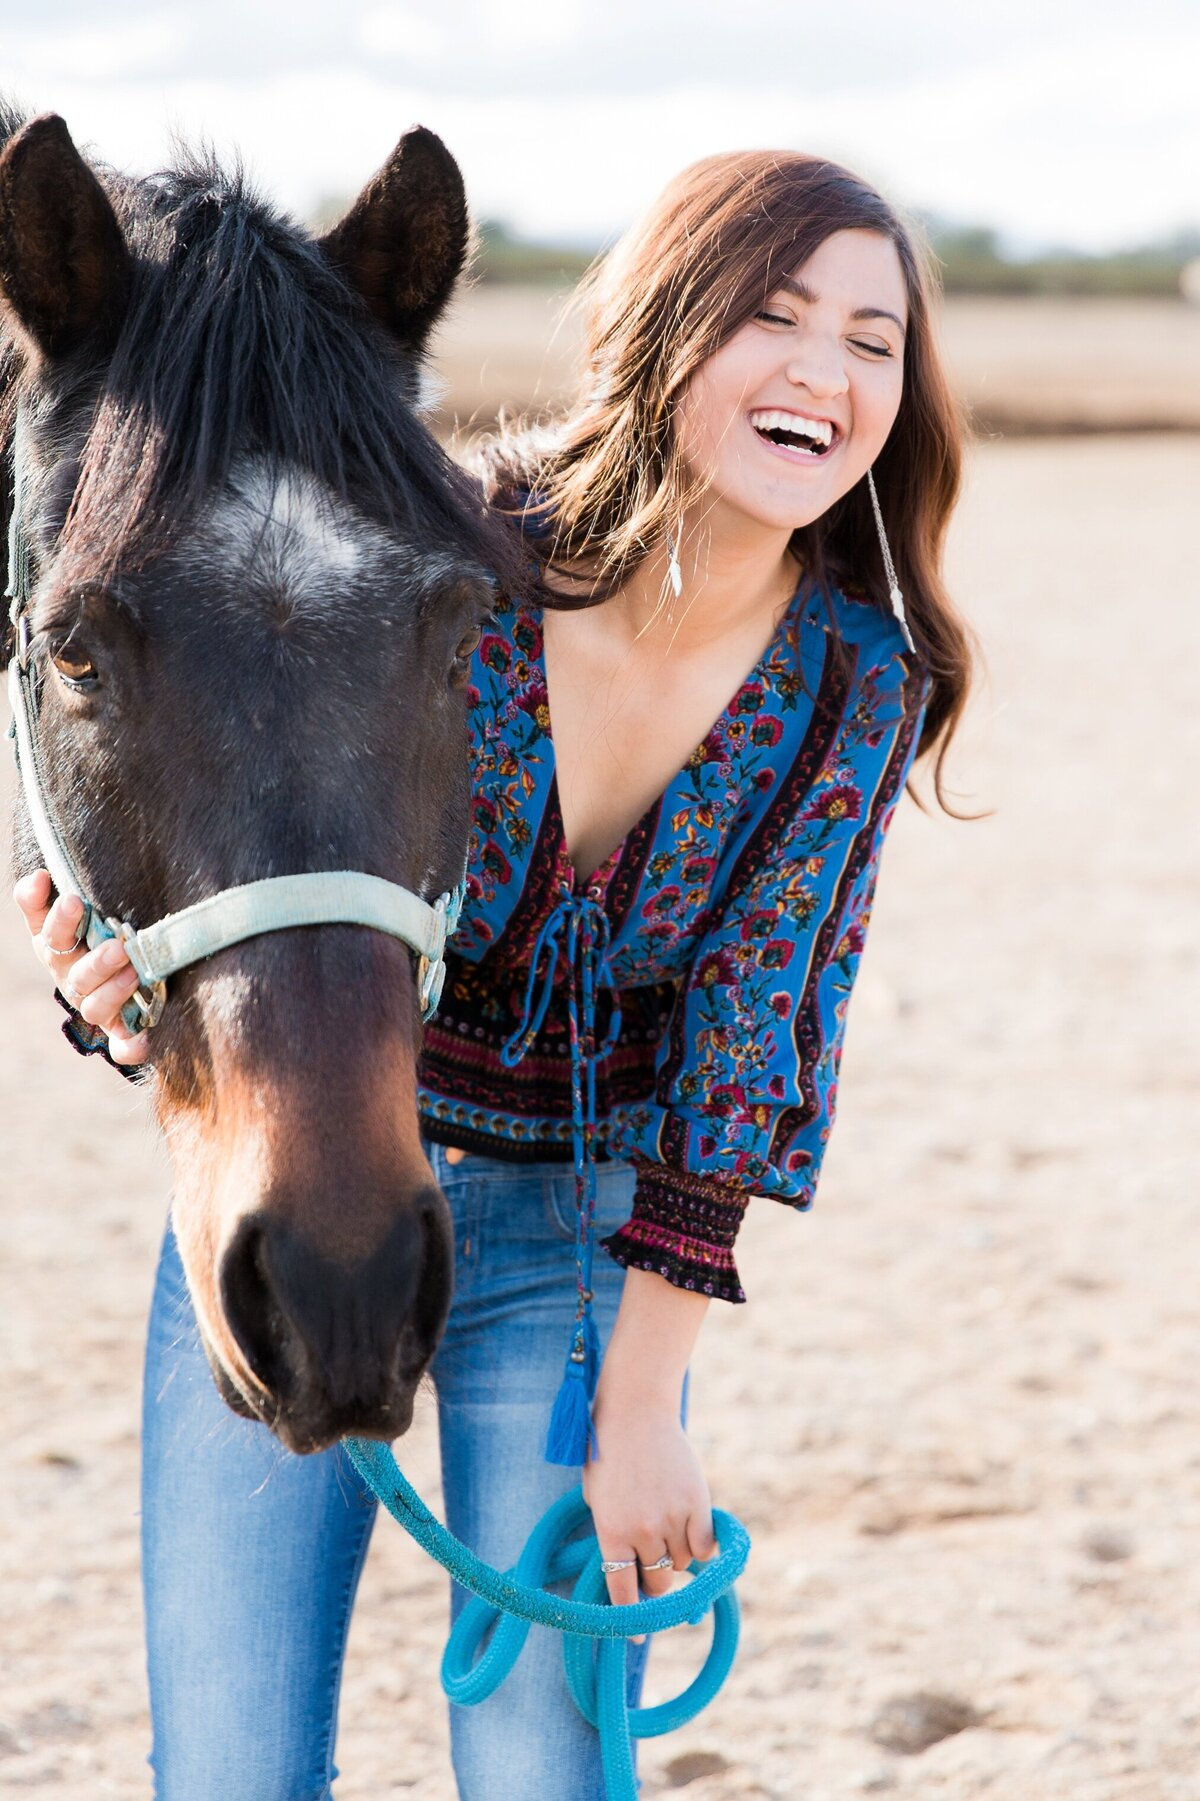 Portrait of a laughing girl standing next to her horse.